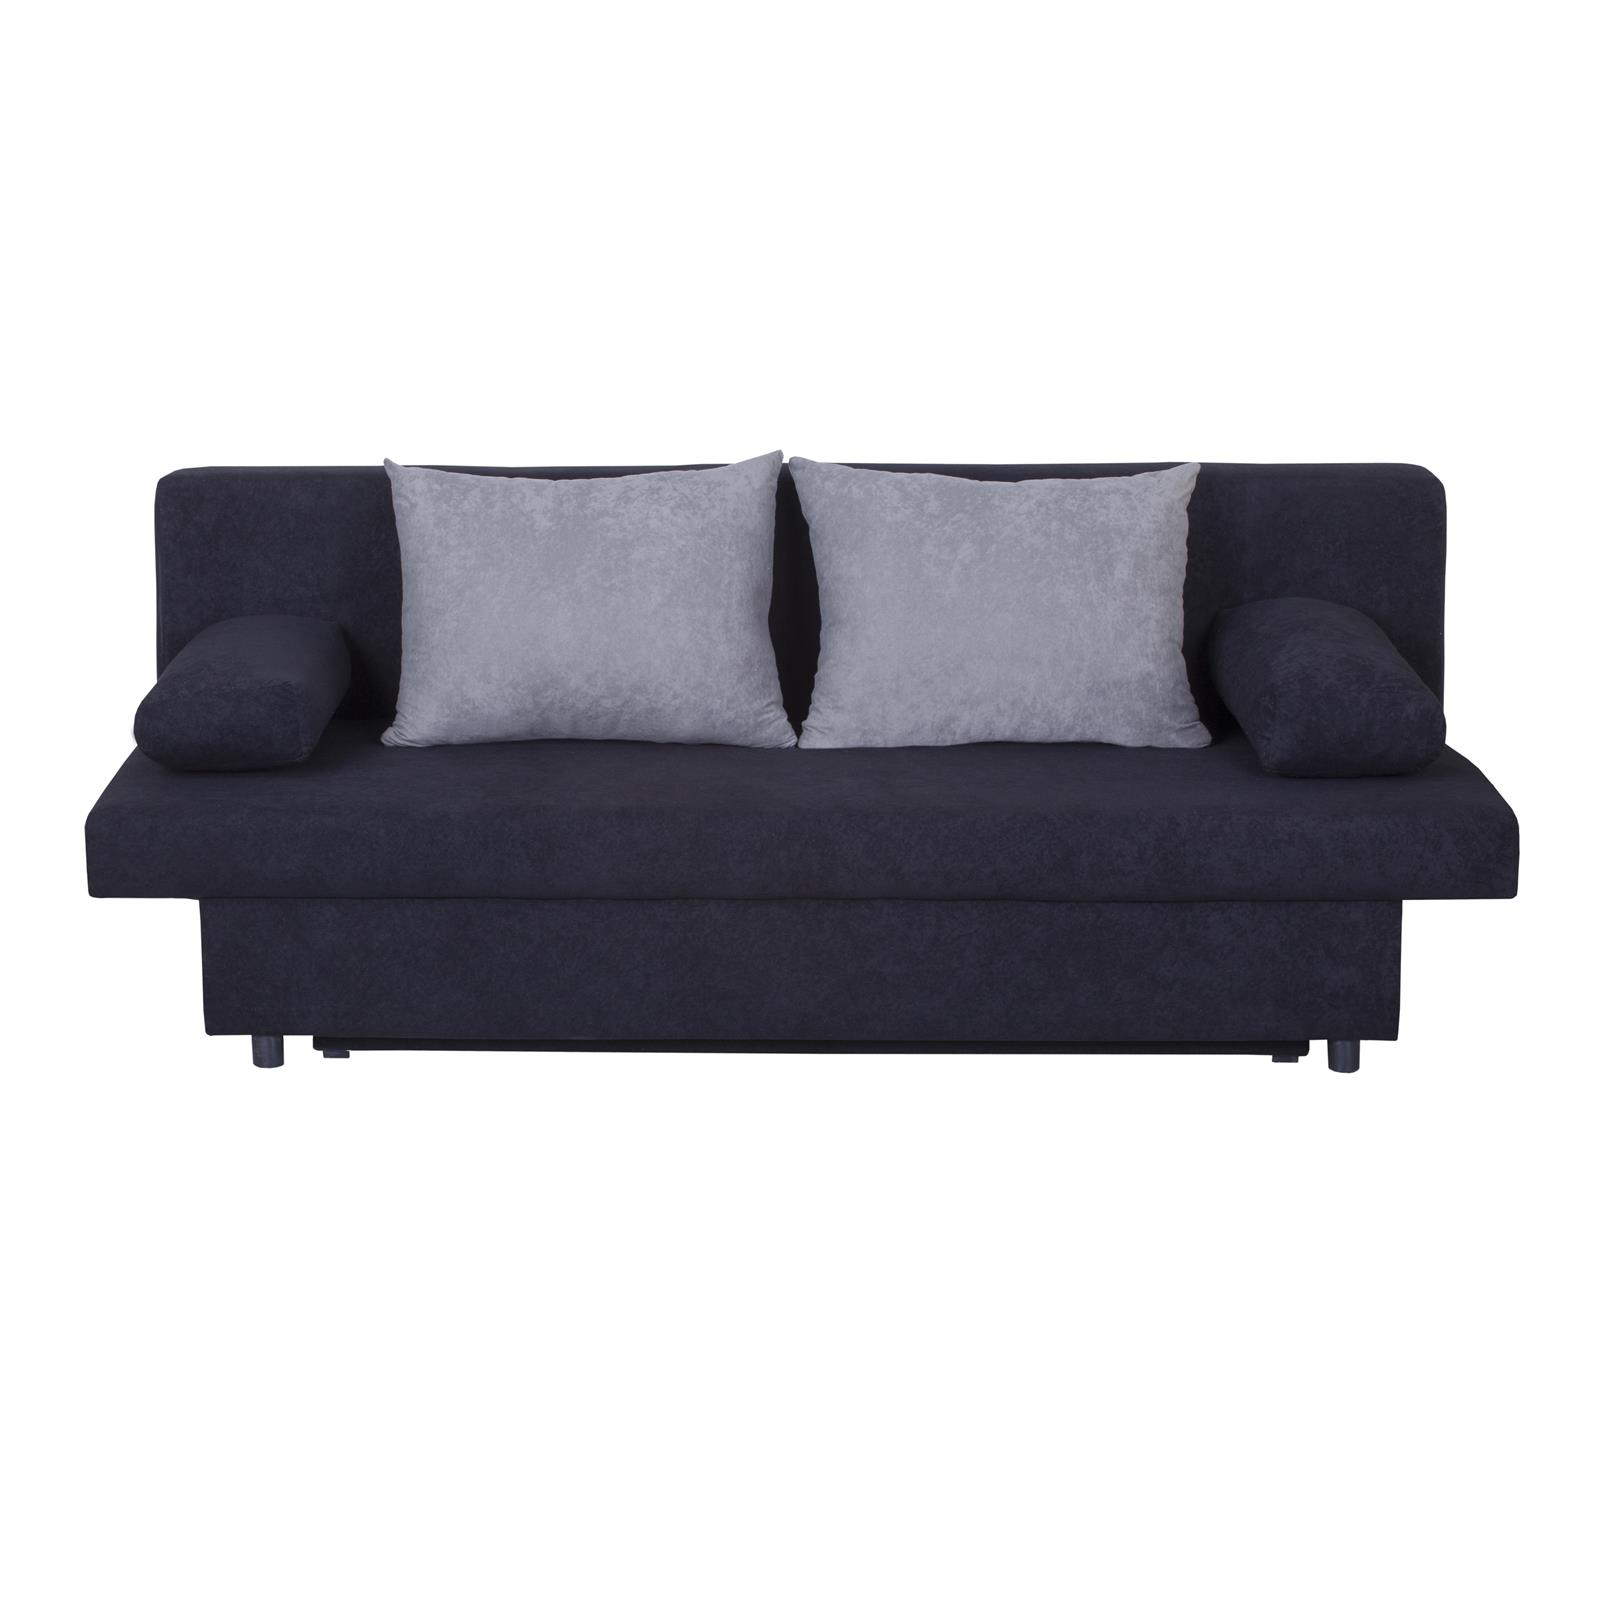 schlafsofa mit bettkasten ikea schlafsofa mit bettkasten ikea schlafsofa mit ikea bettkasten. Black Bedroom Furniture Sets. Home Design Ideas